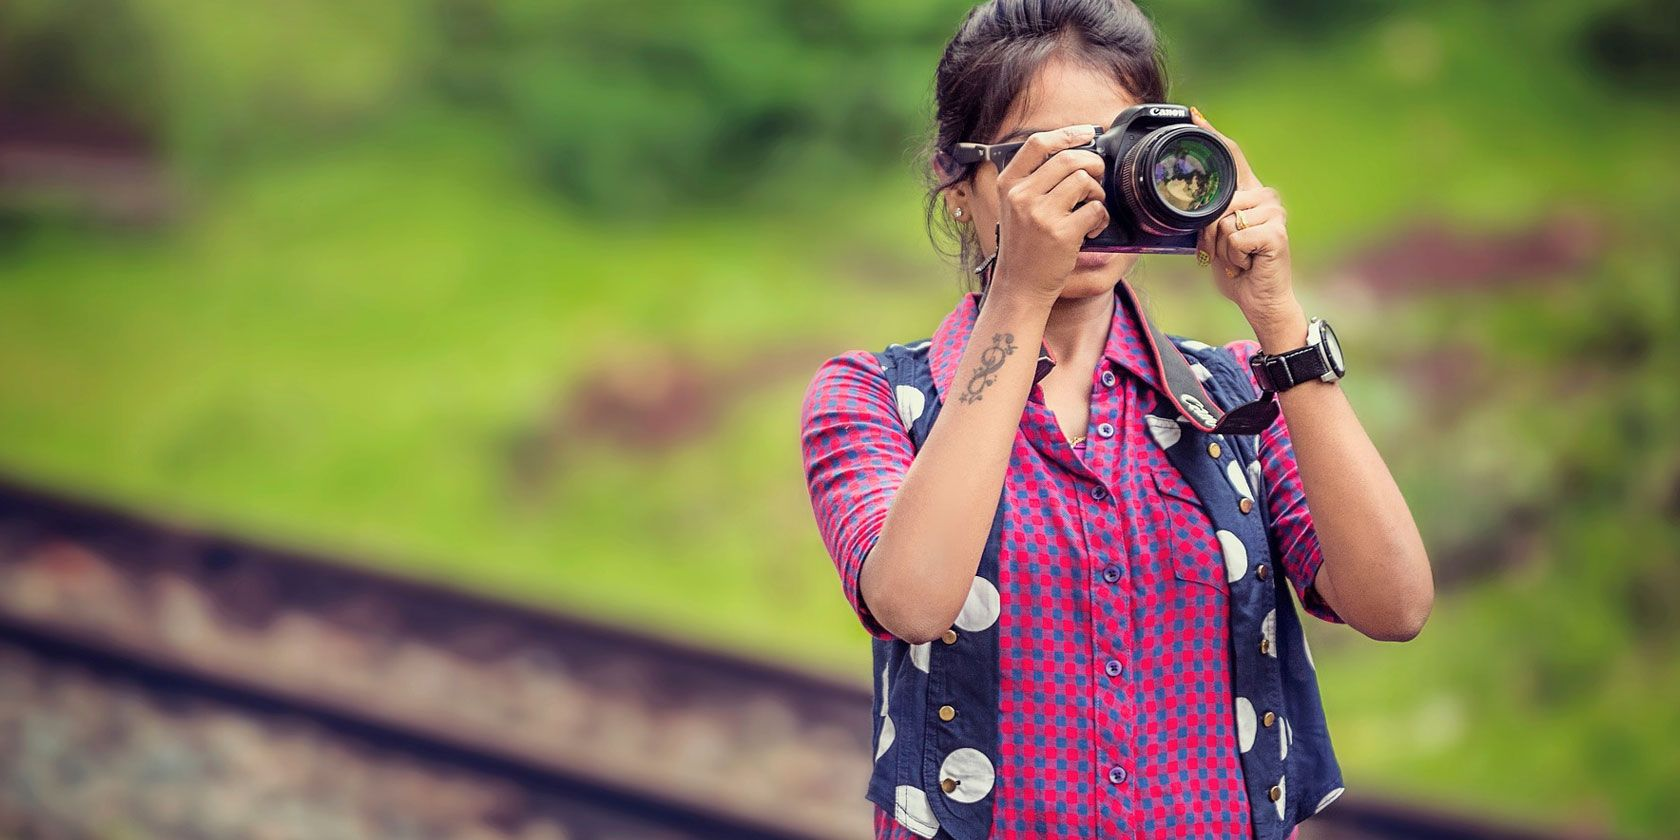 7 Simple Ways to Instantly Boost Your Photography Skills